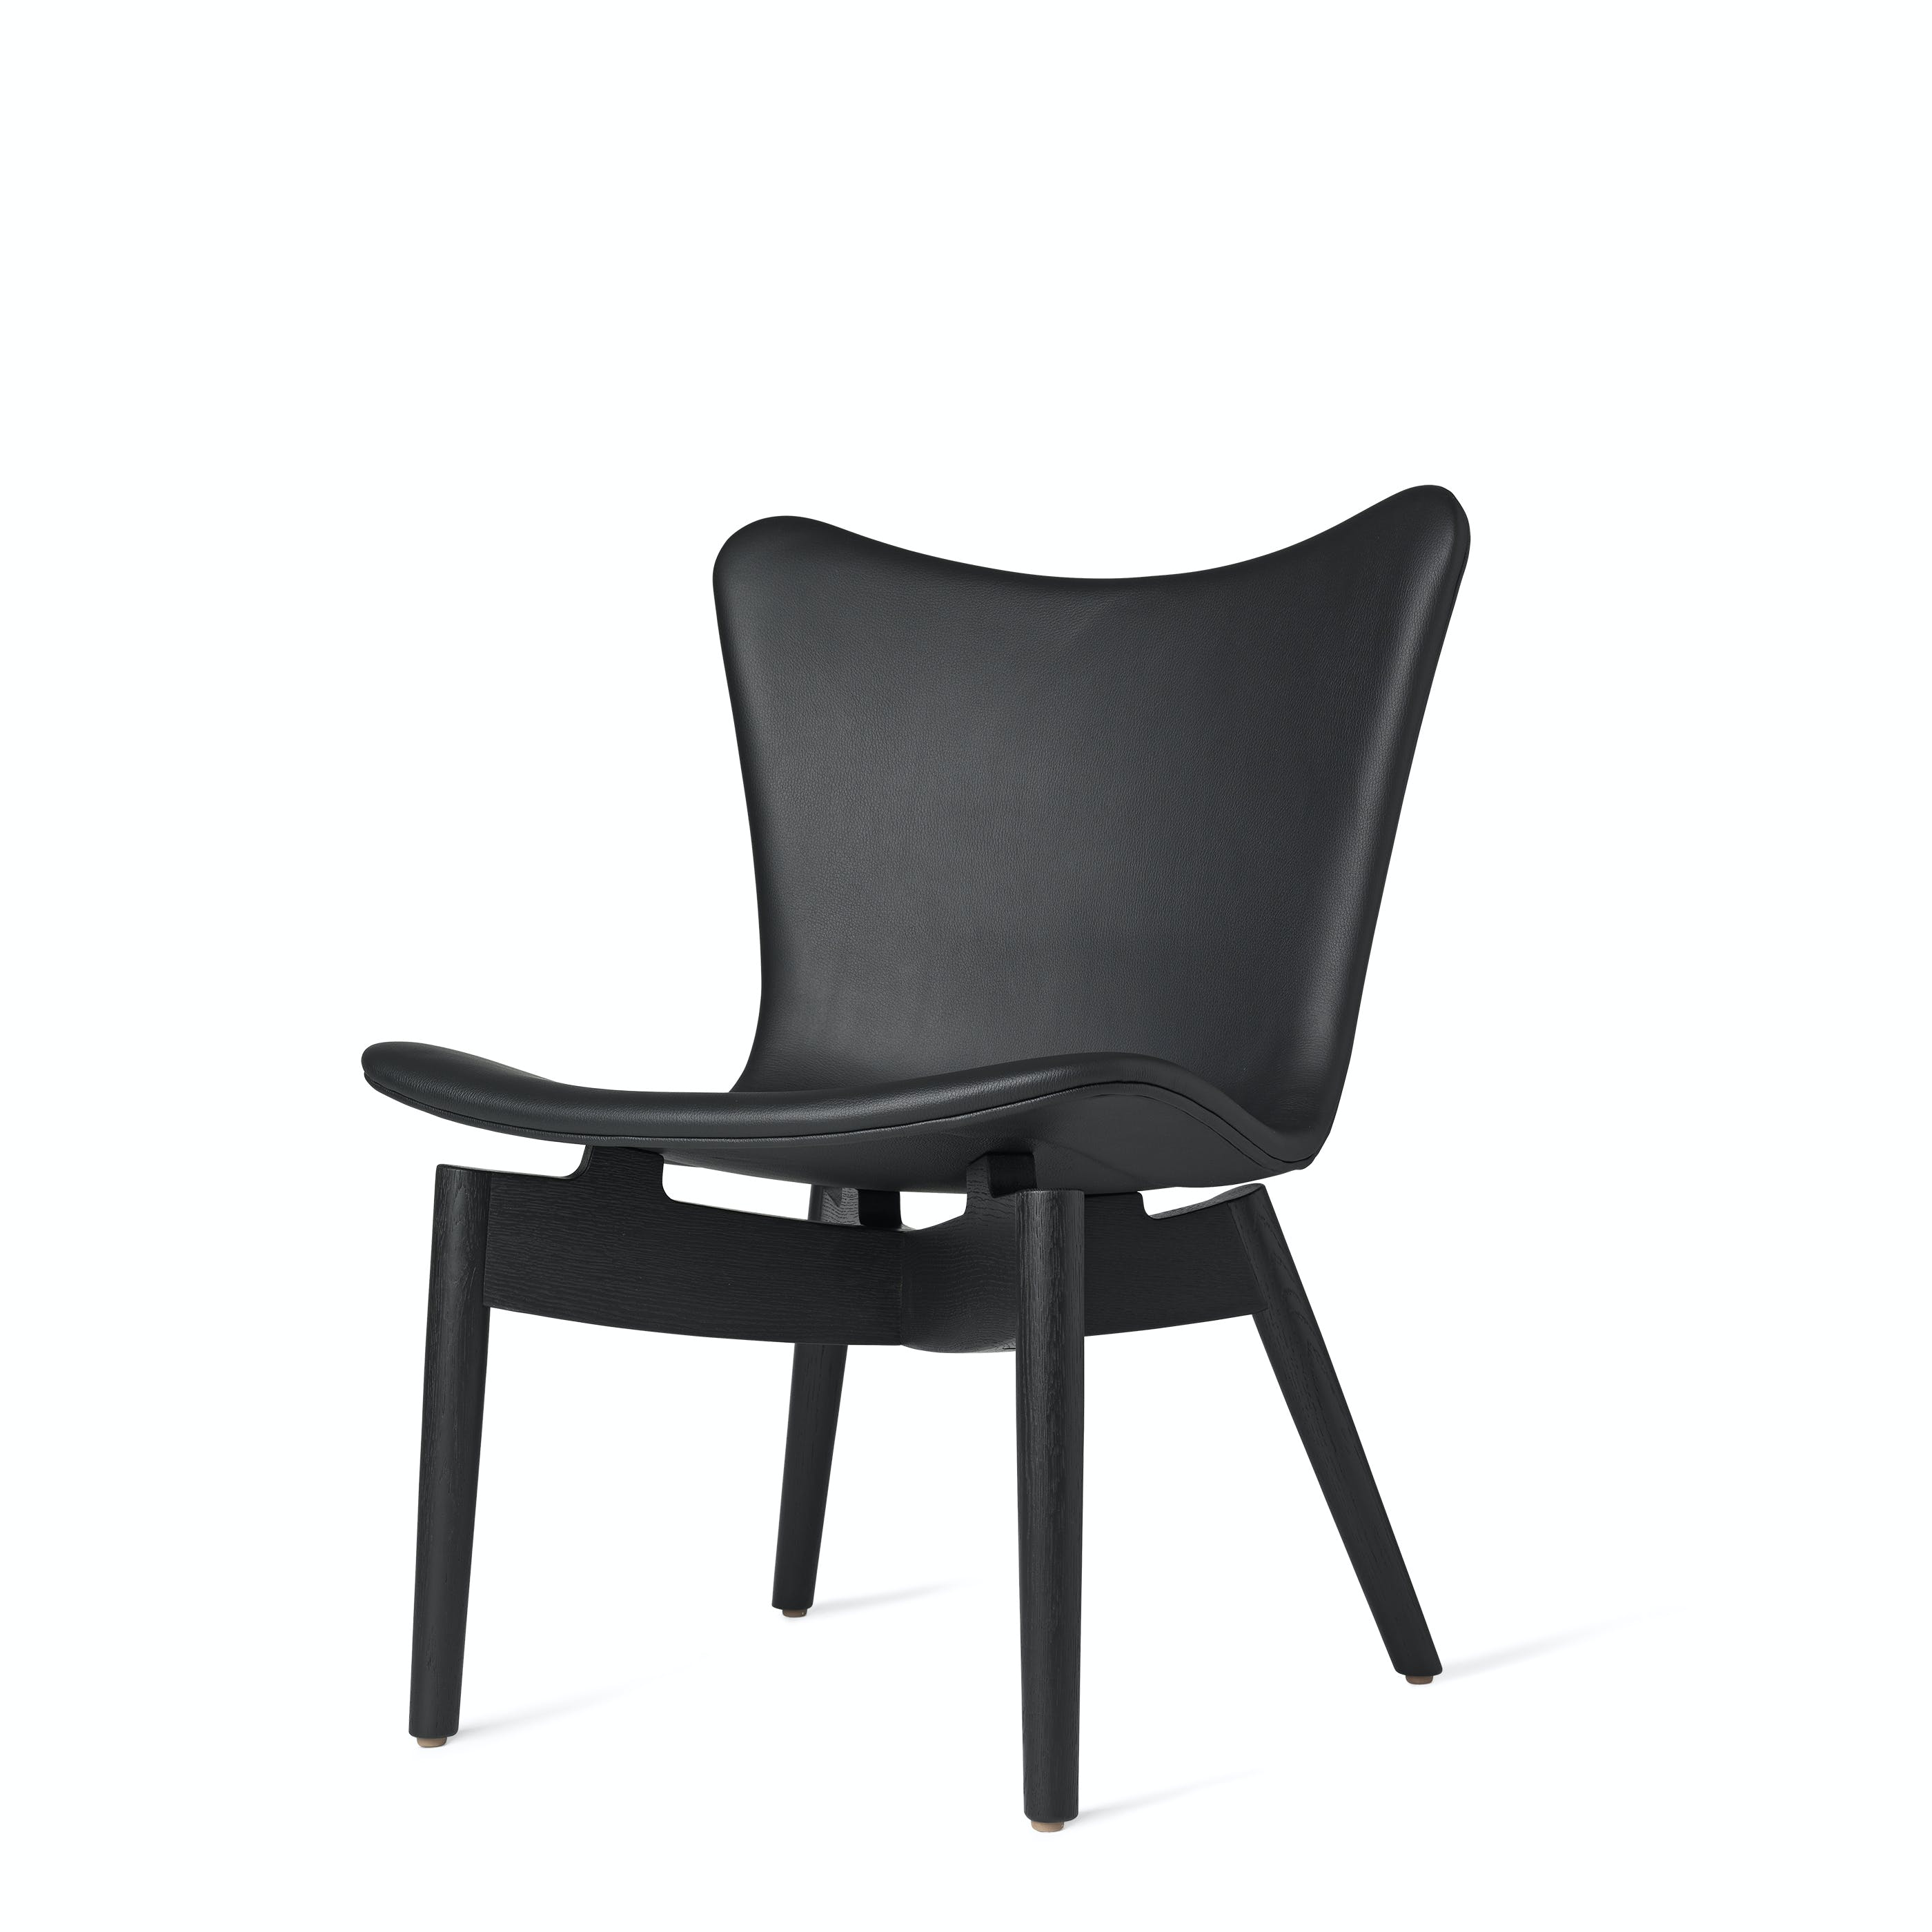 Mater Black Shell Lounge Chair Front Angle Haute Living